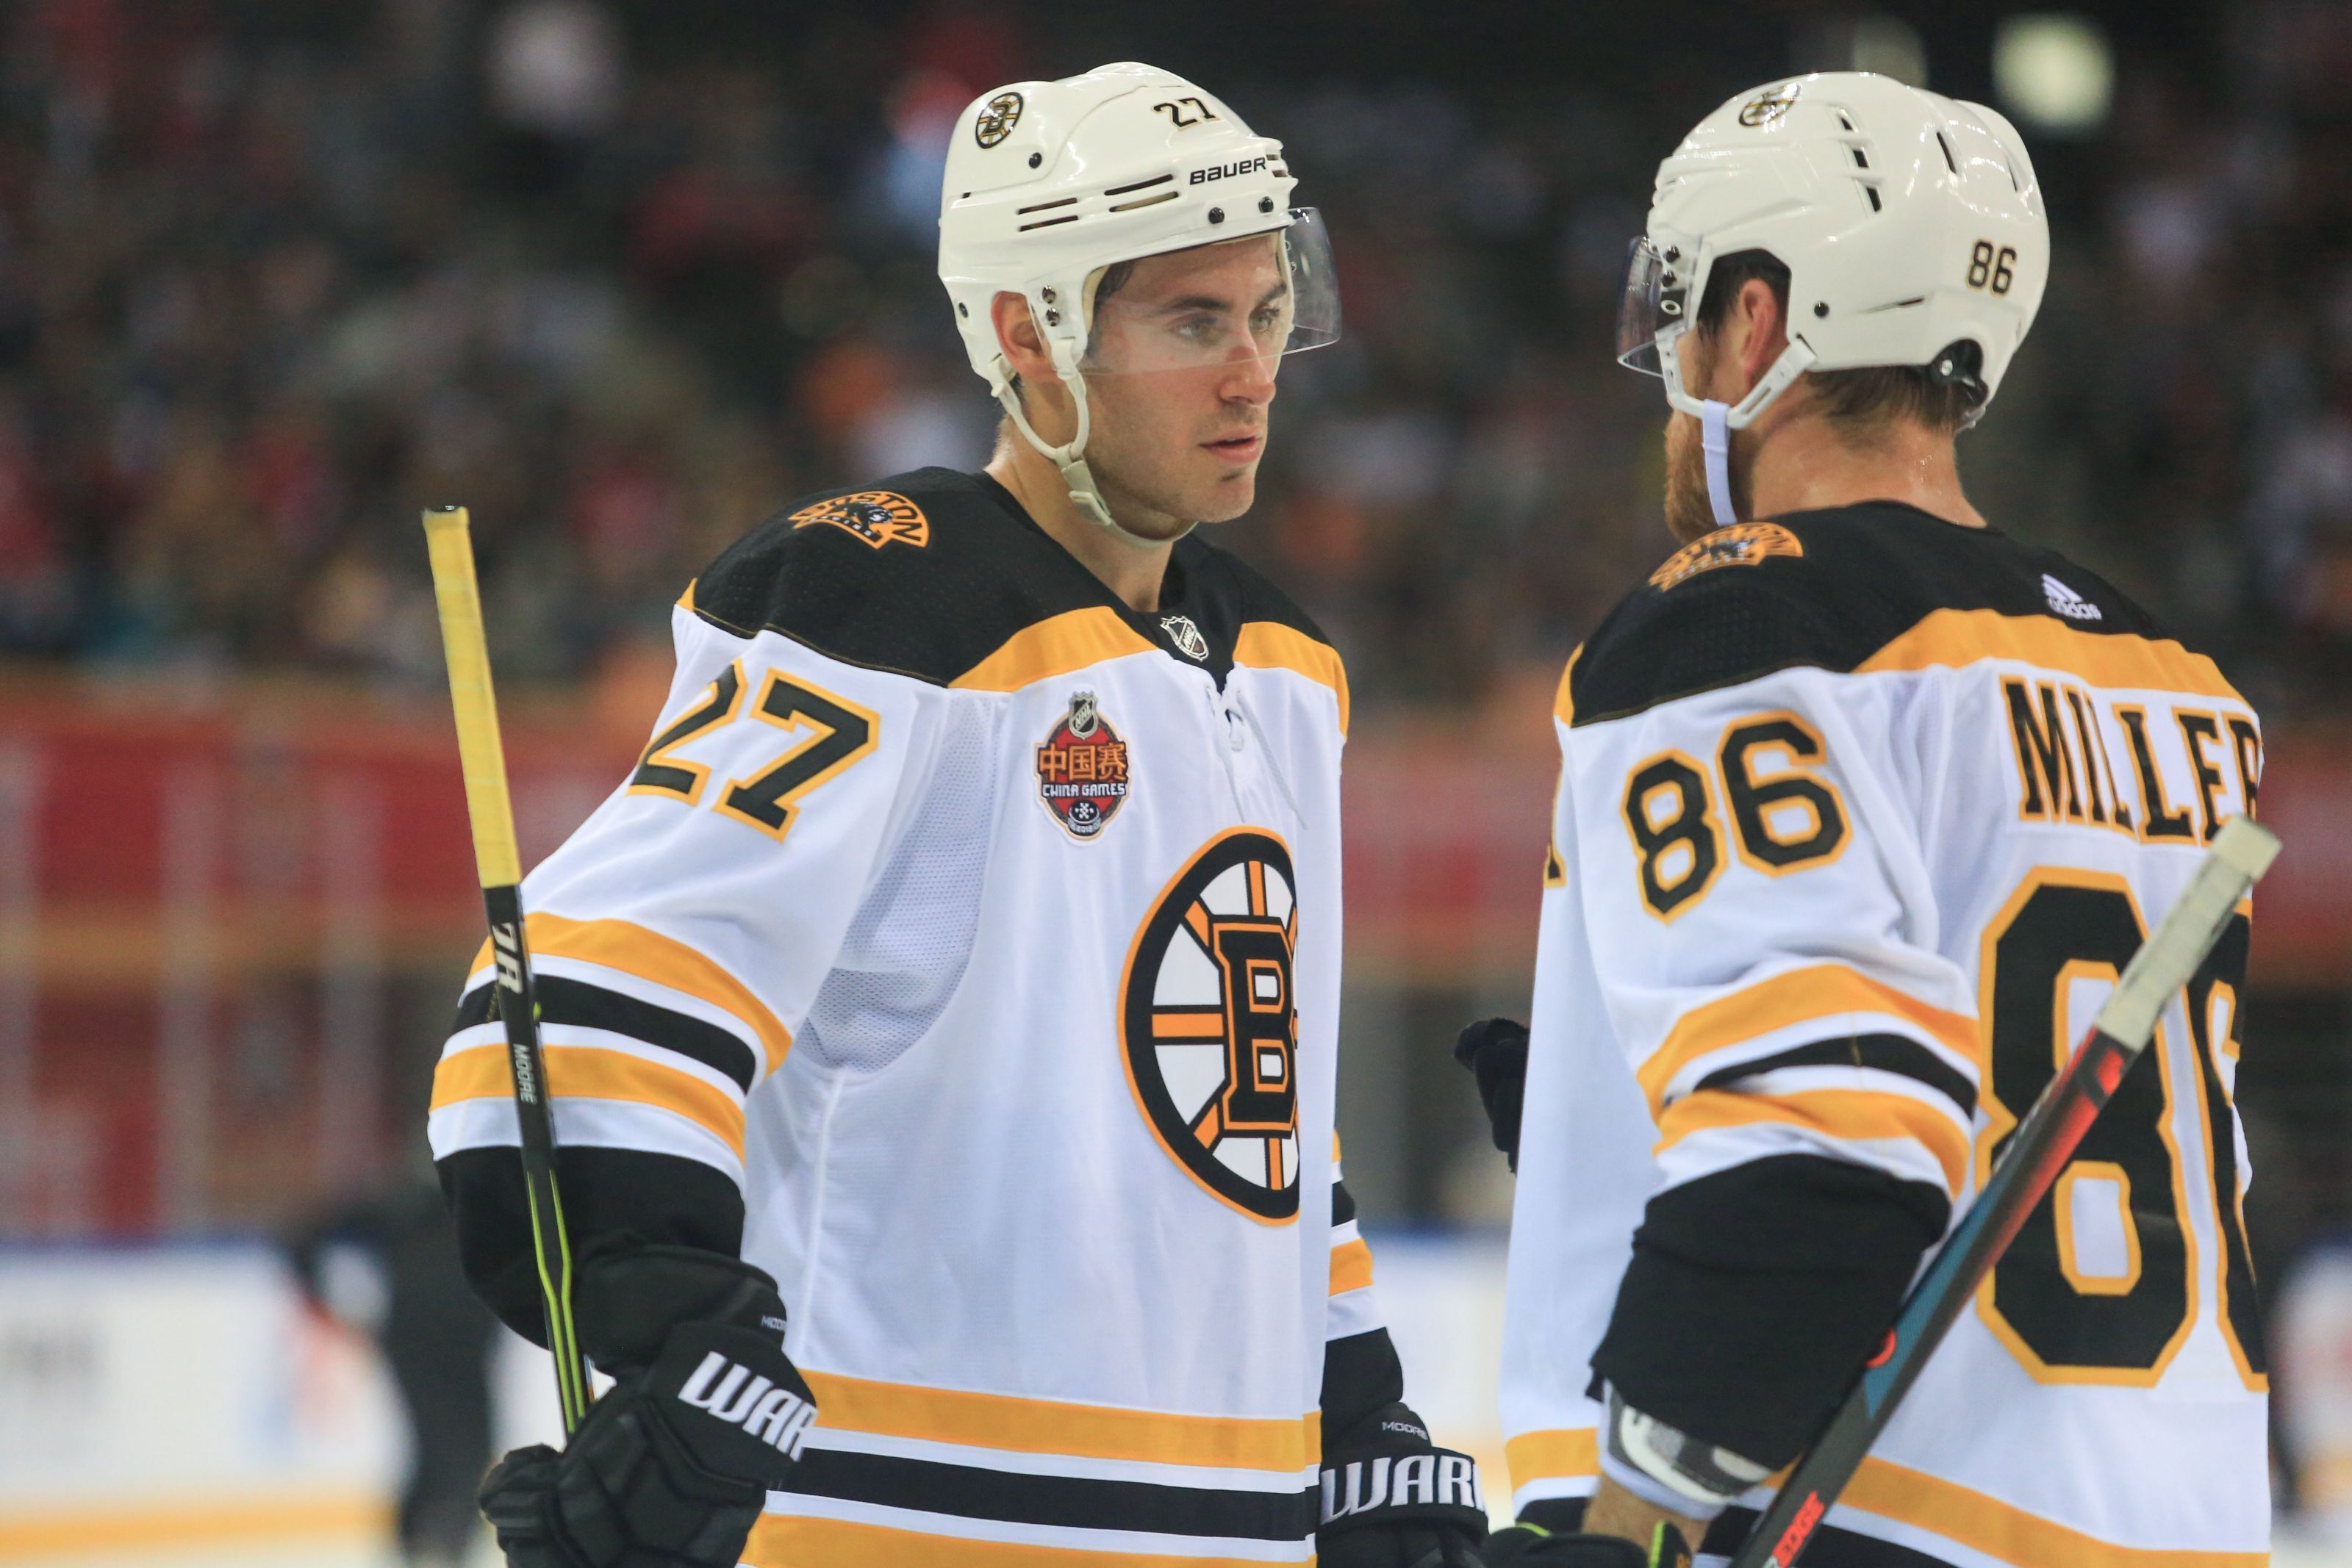 Boston Bruins: Is it possible to get a trade return from injured reserves?